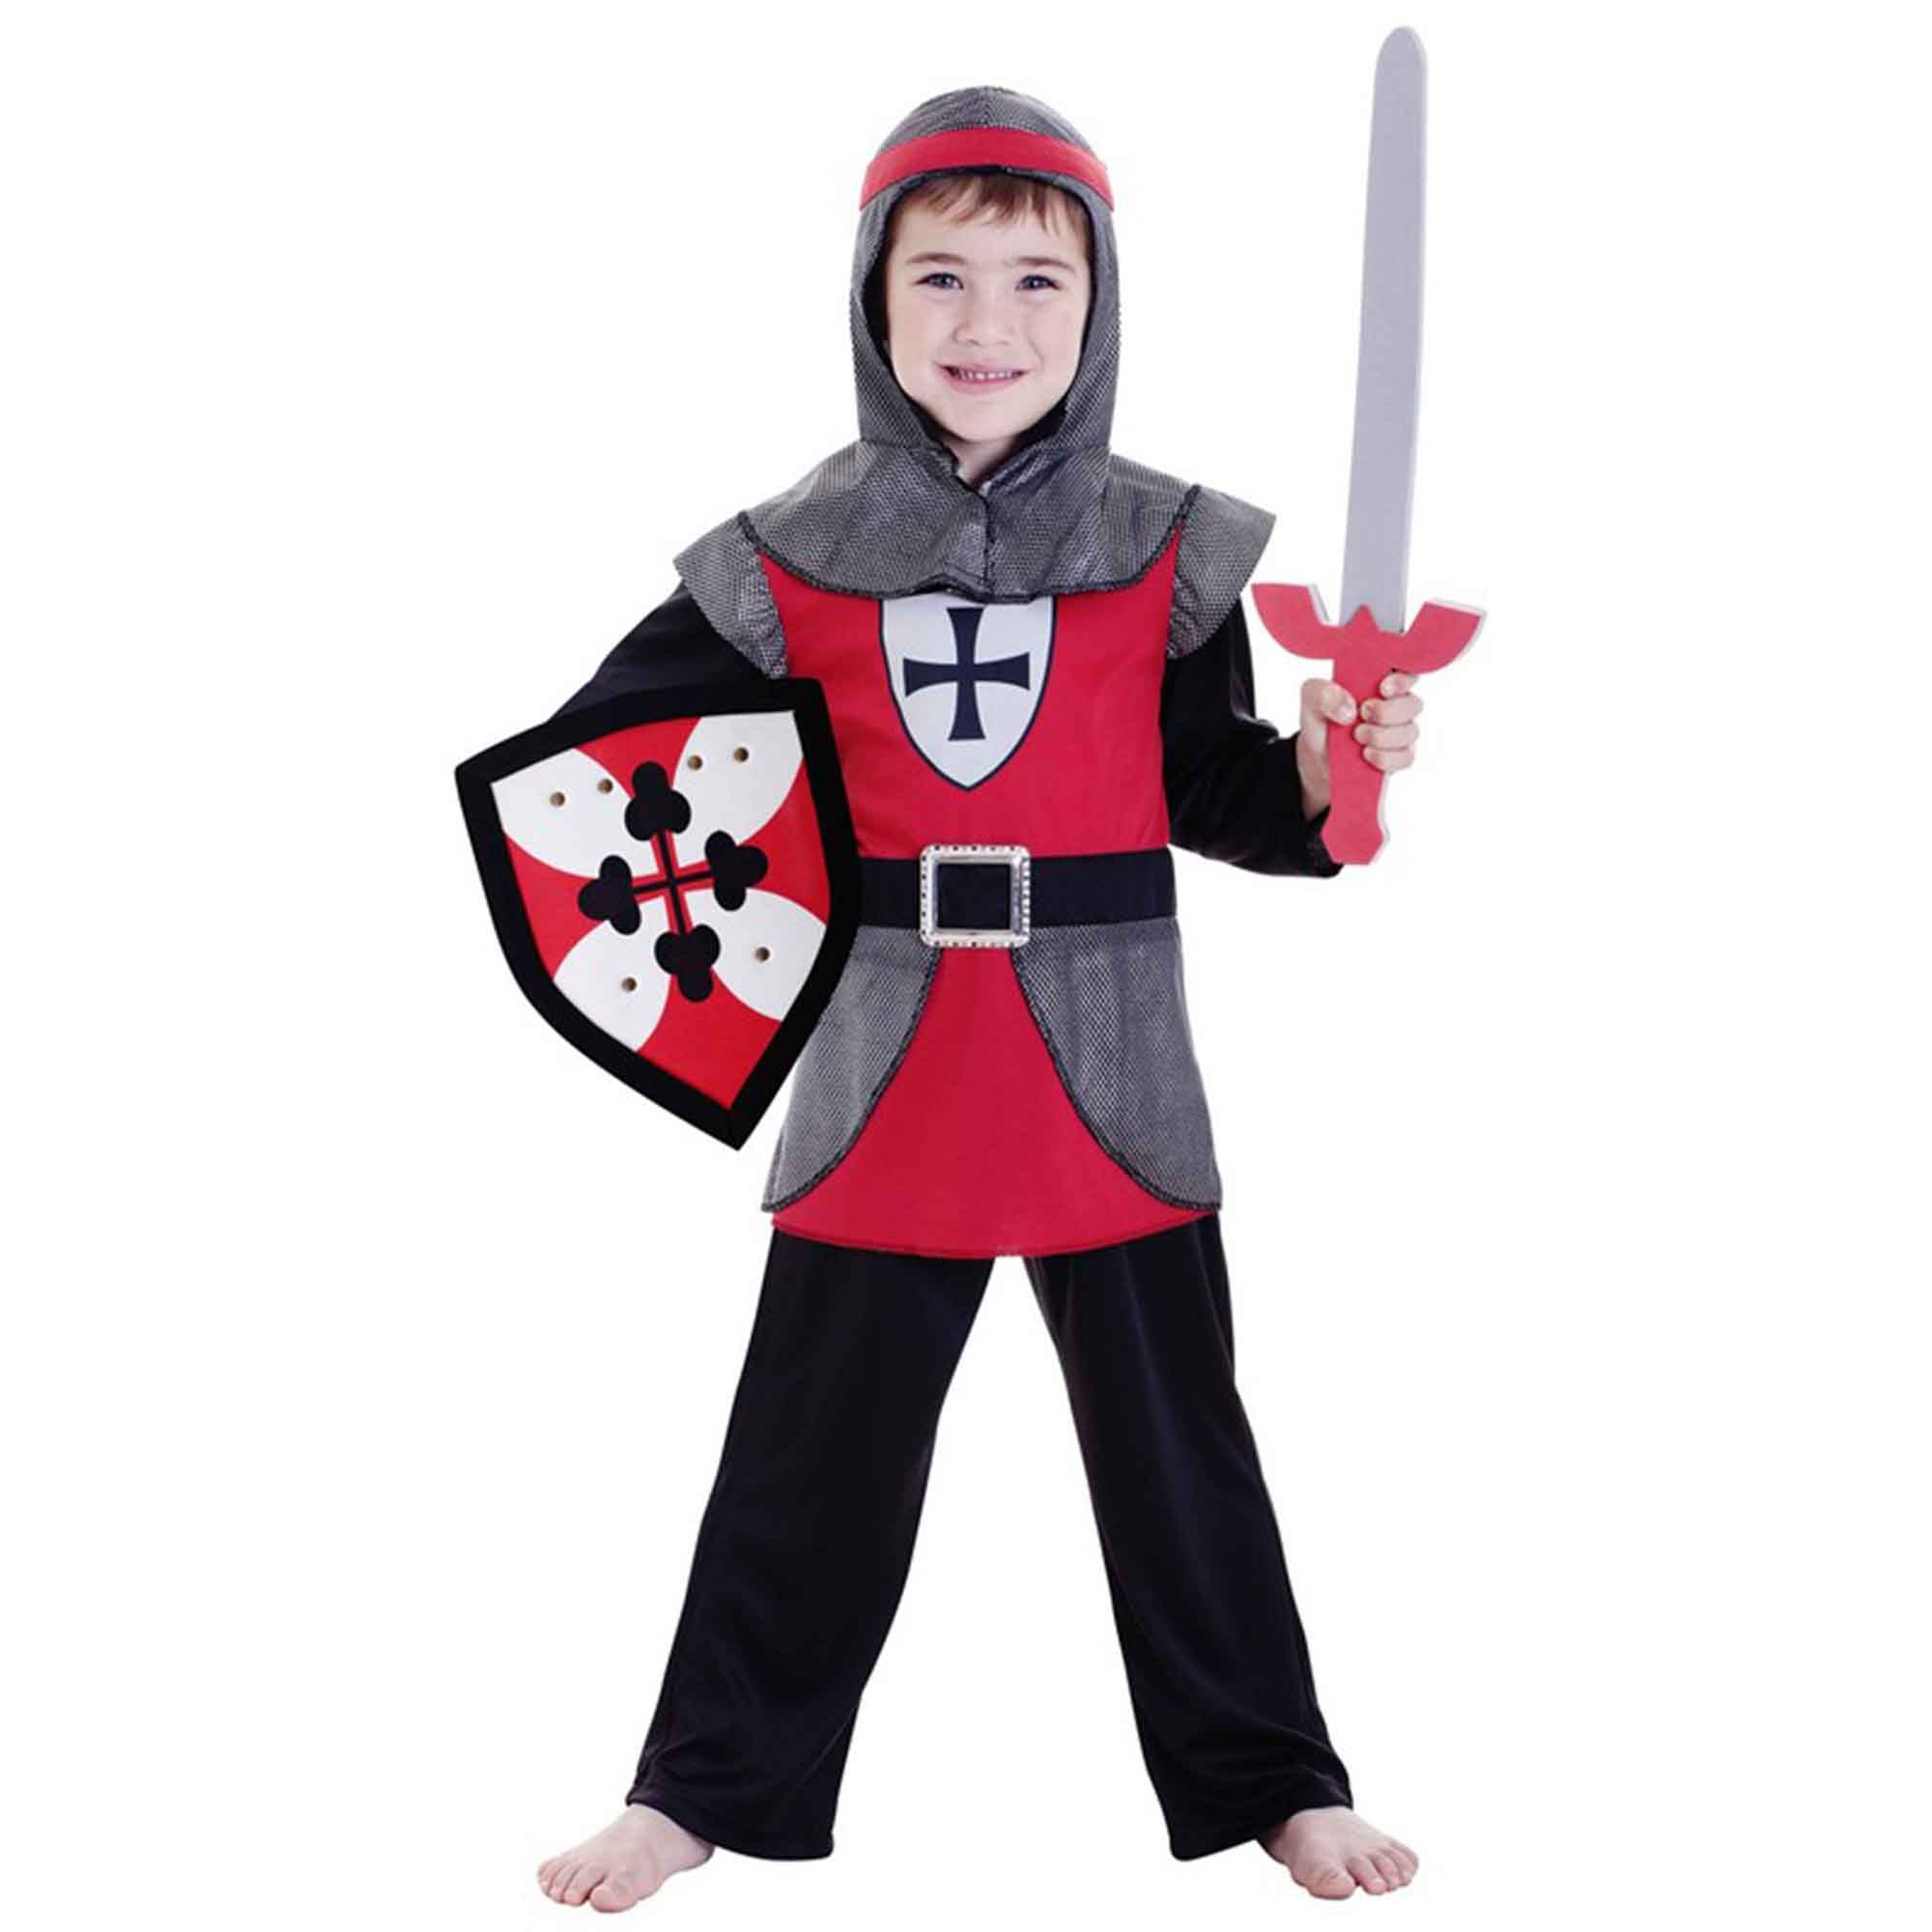 Deluxe Knight Boy Costume (Large) 6-8 yrs